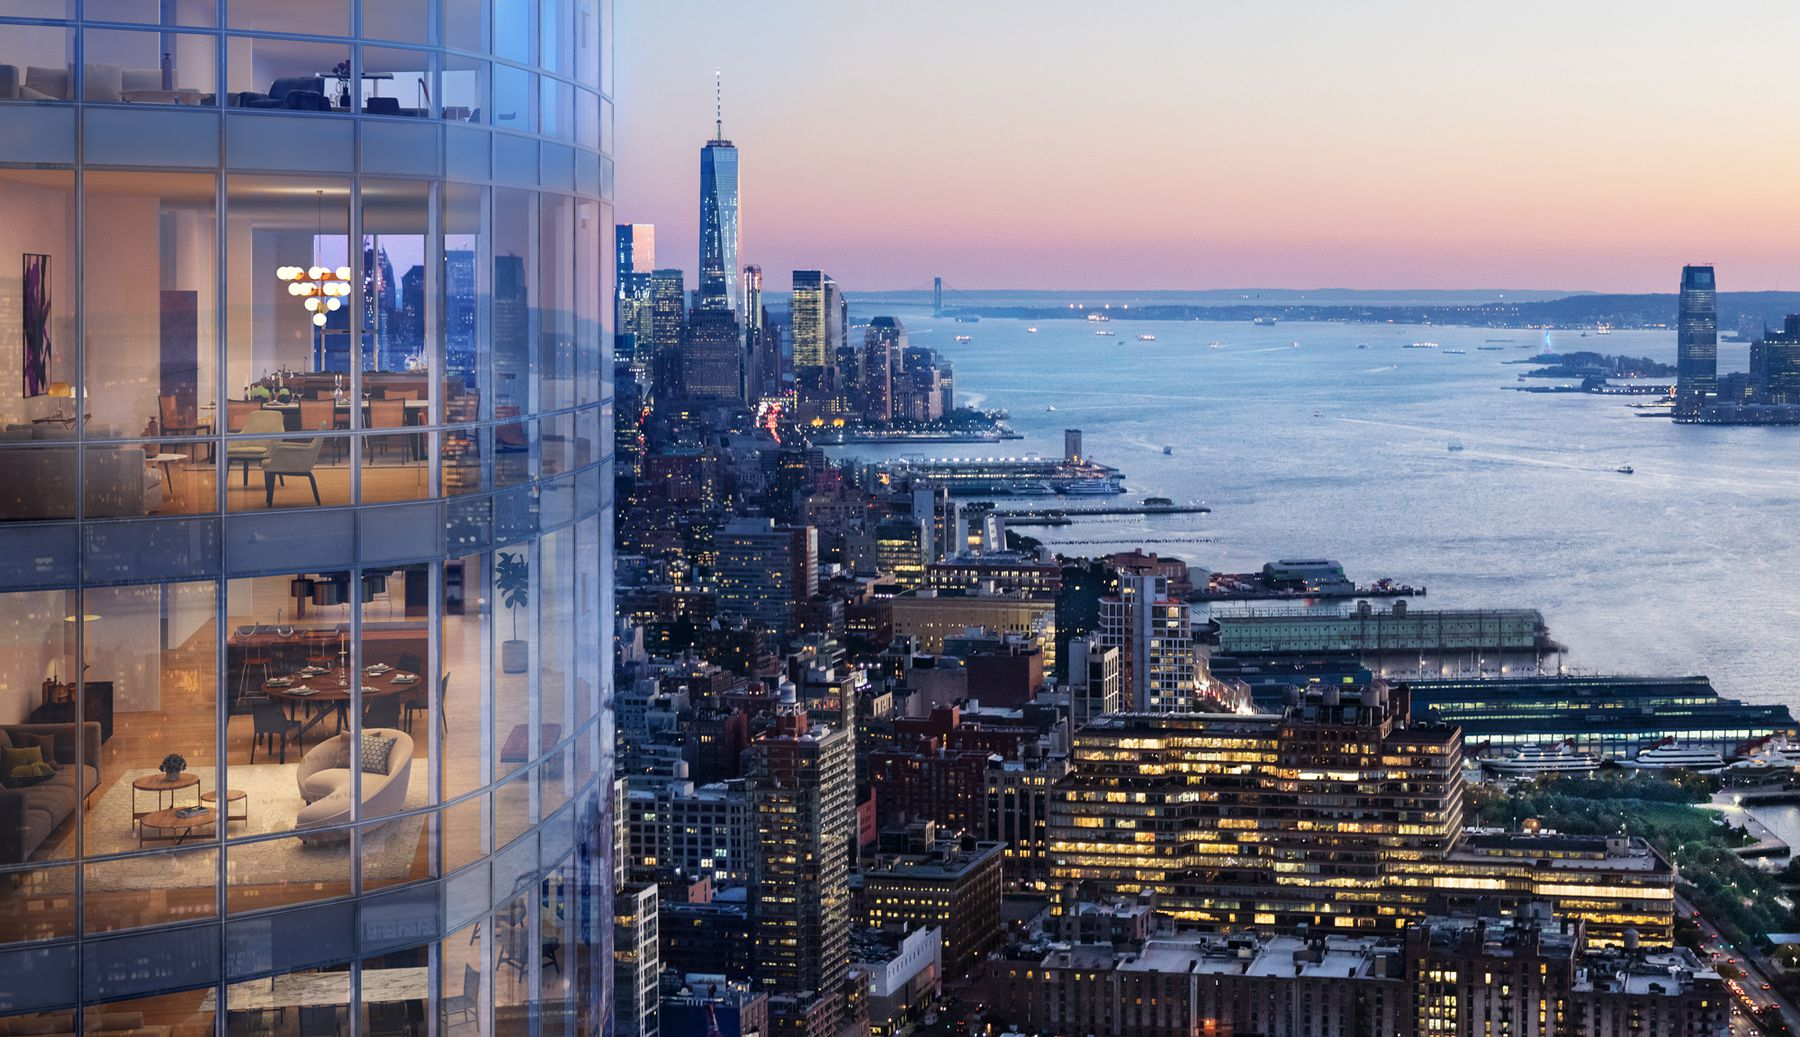 Construction Update: Diller Scofidio + Renfro-Designed 15 Hudson Yards Begins to Show its Curves as Construction Reaches Upper Floors